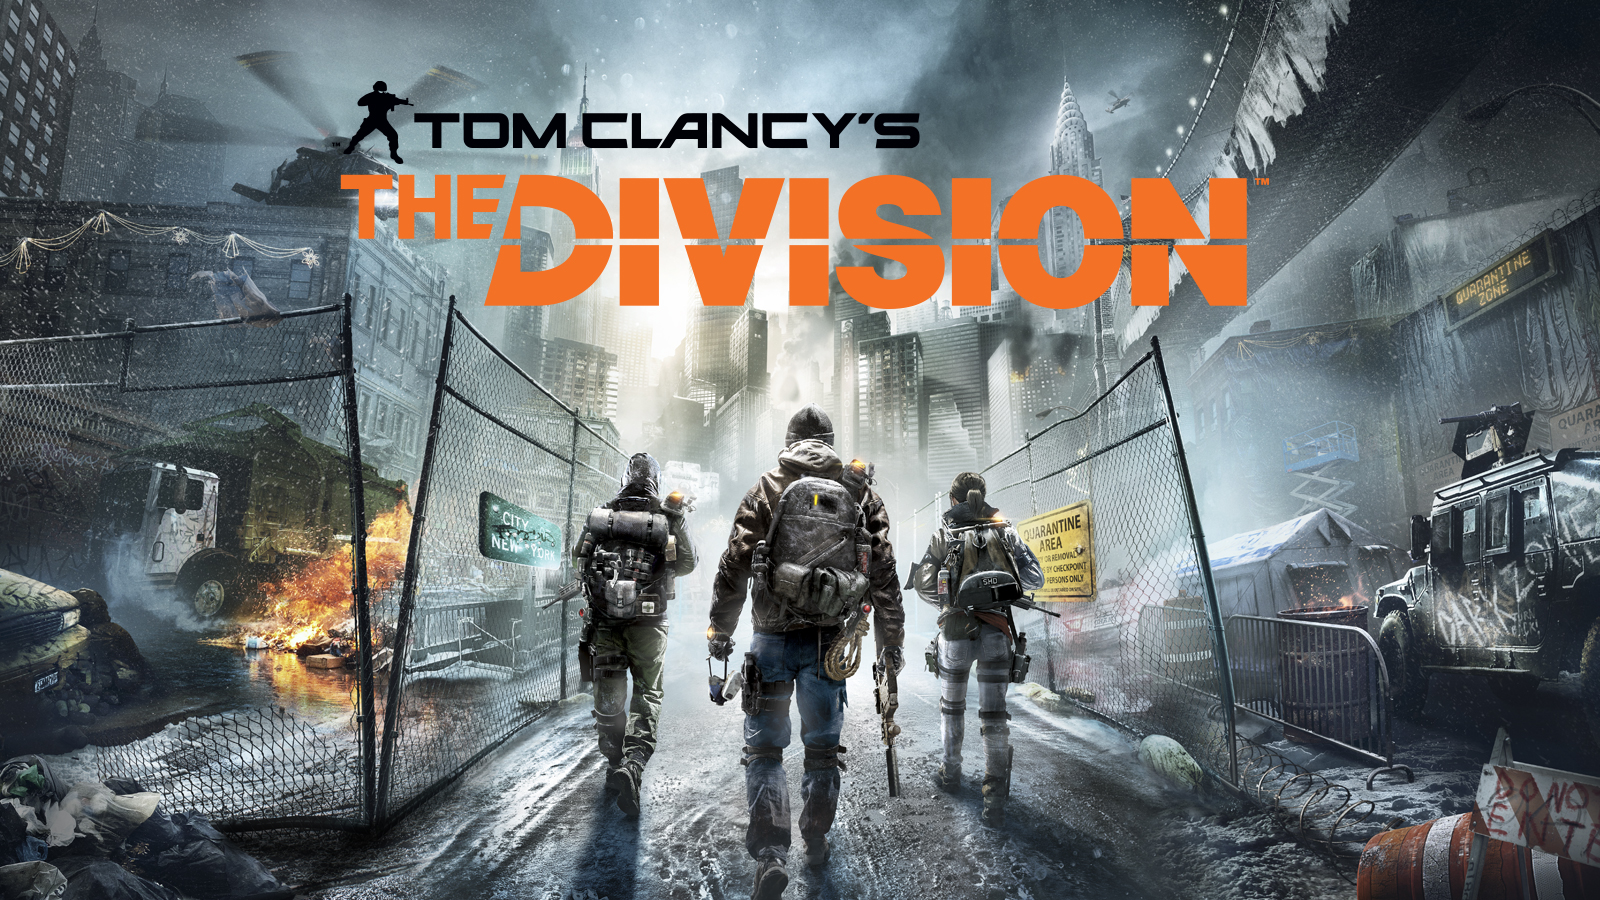 HQ Tom Clancy's The Division Wallpapers | File 2884.26Kb